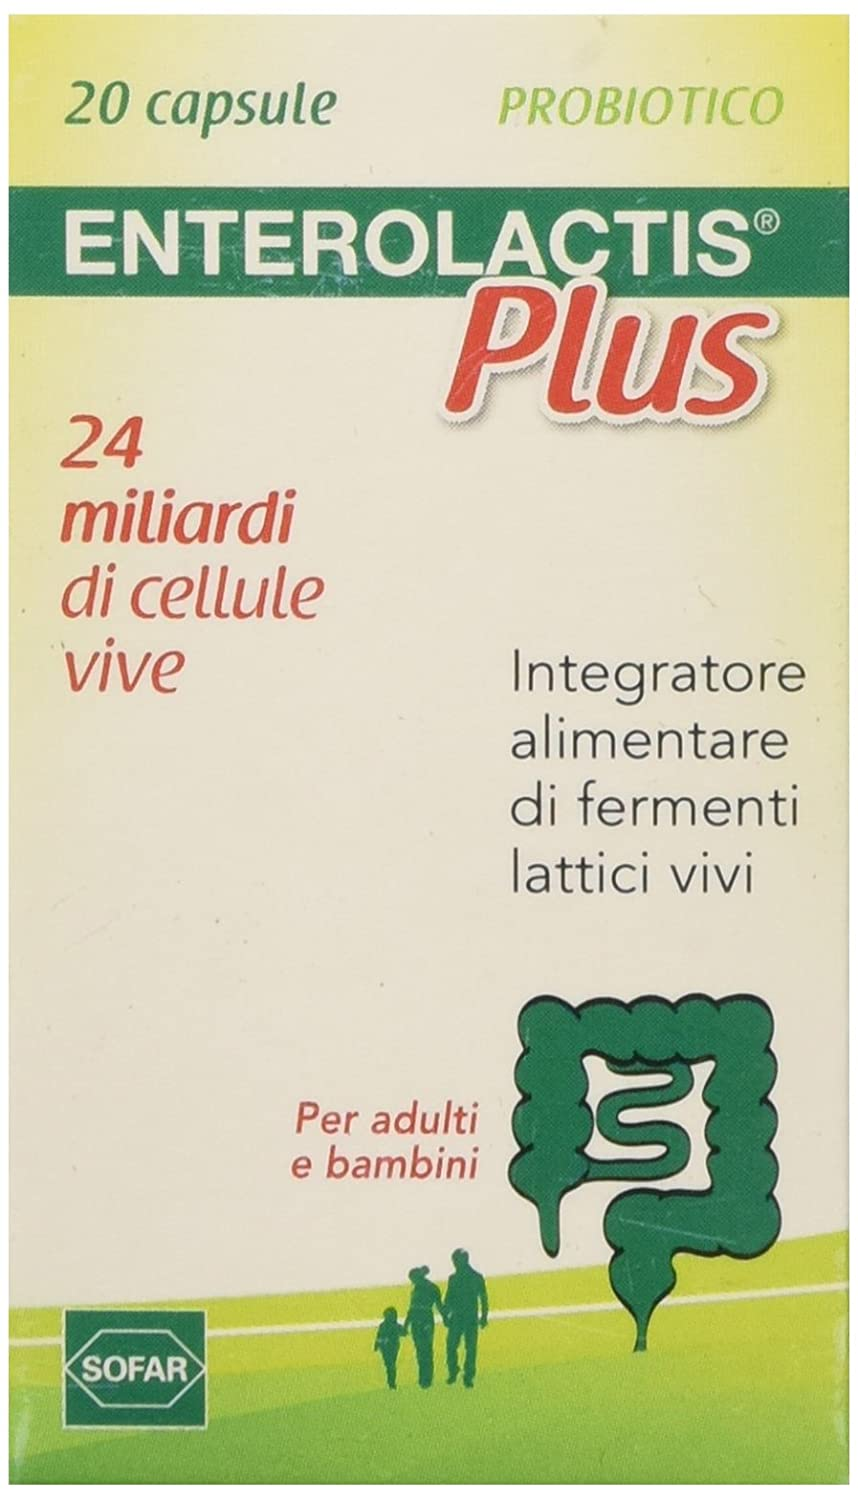 Enterolactis Plus